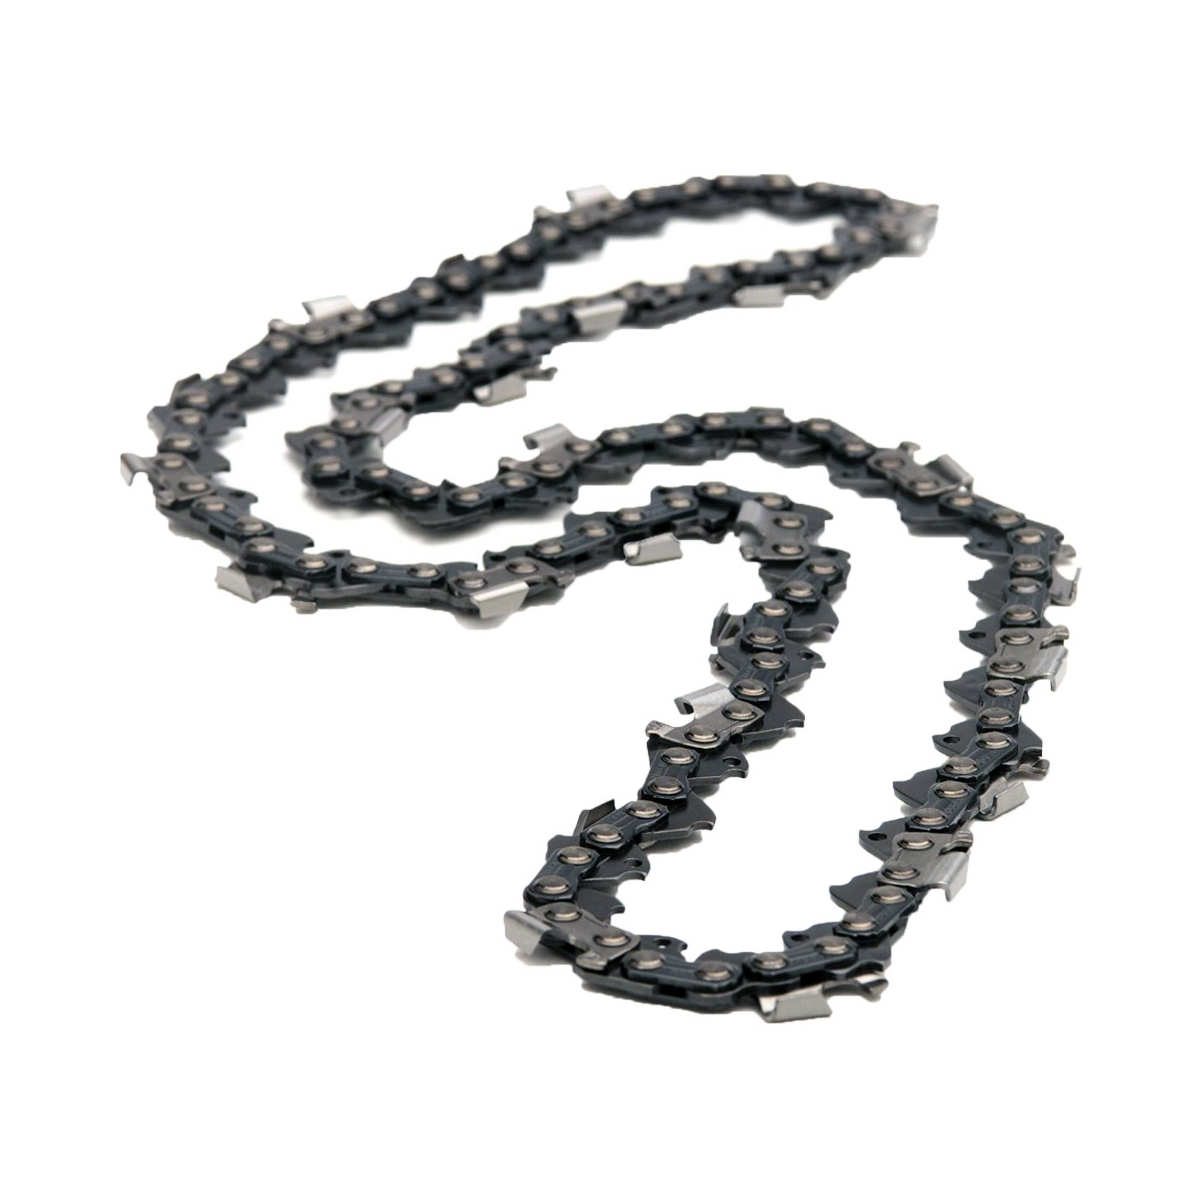 "Genuine Husqvarna 12"" Chain Loop 45DL 3/8 Pitch .050 Gauge S93G for Husqvarna Chainsaws & Pole Saws / 585422145"